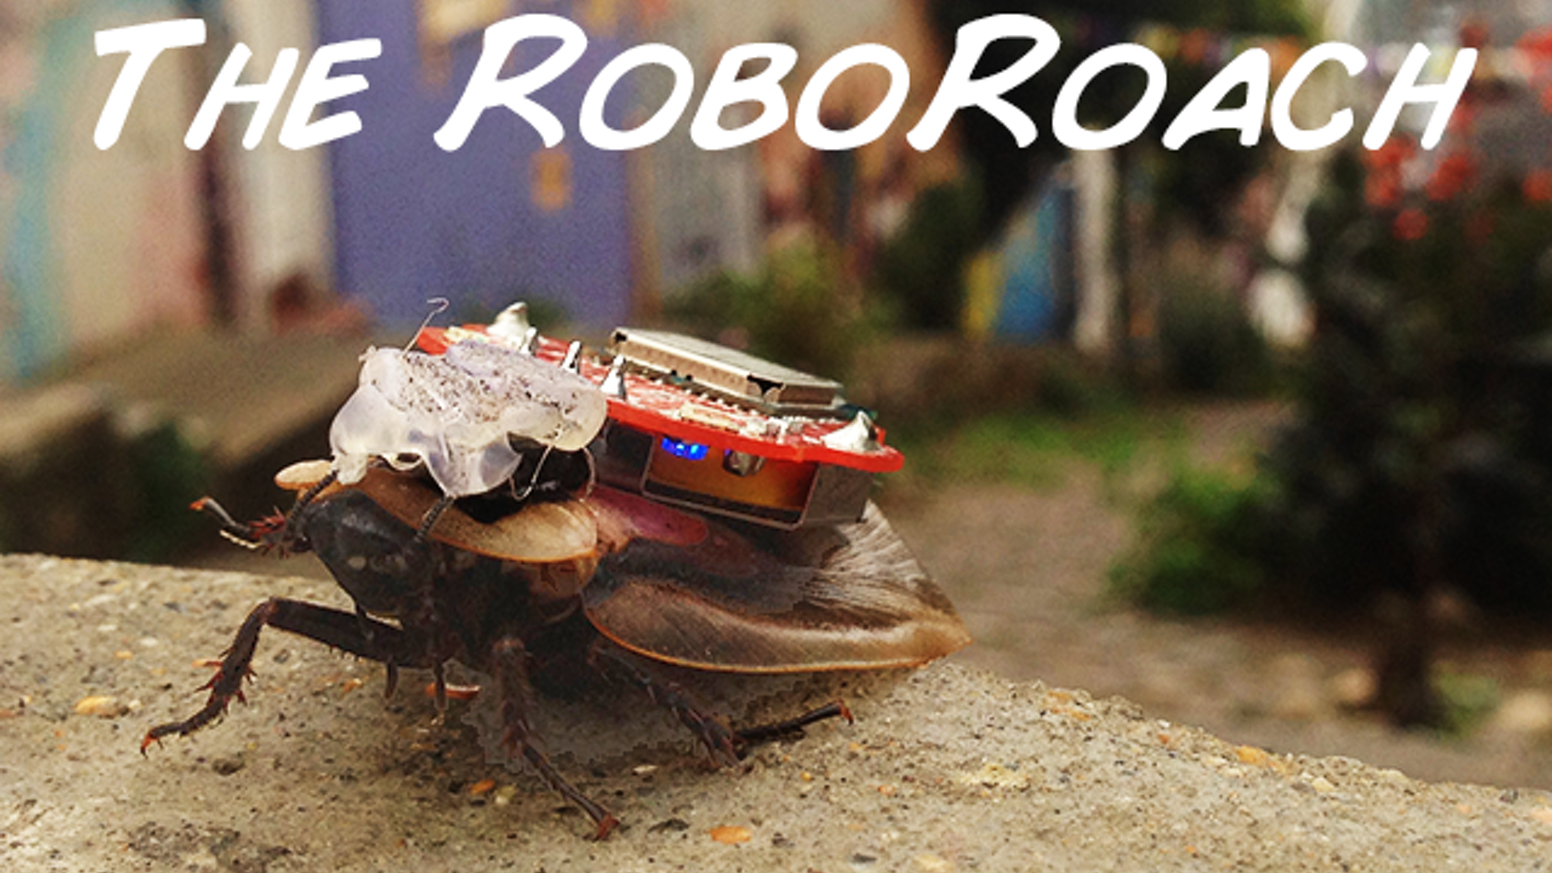 The Roboroach Control A Living Insect From Your Smartphone By